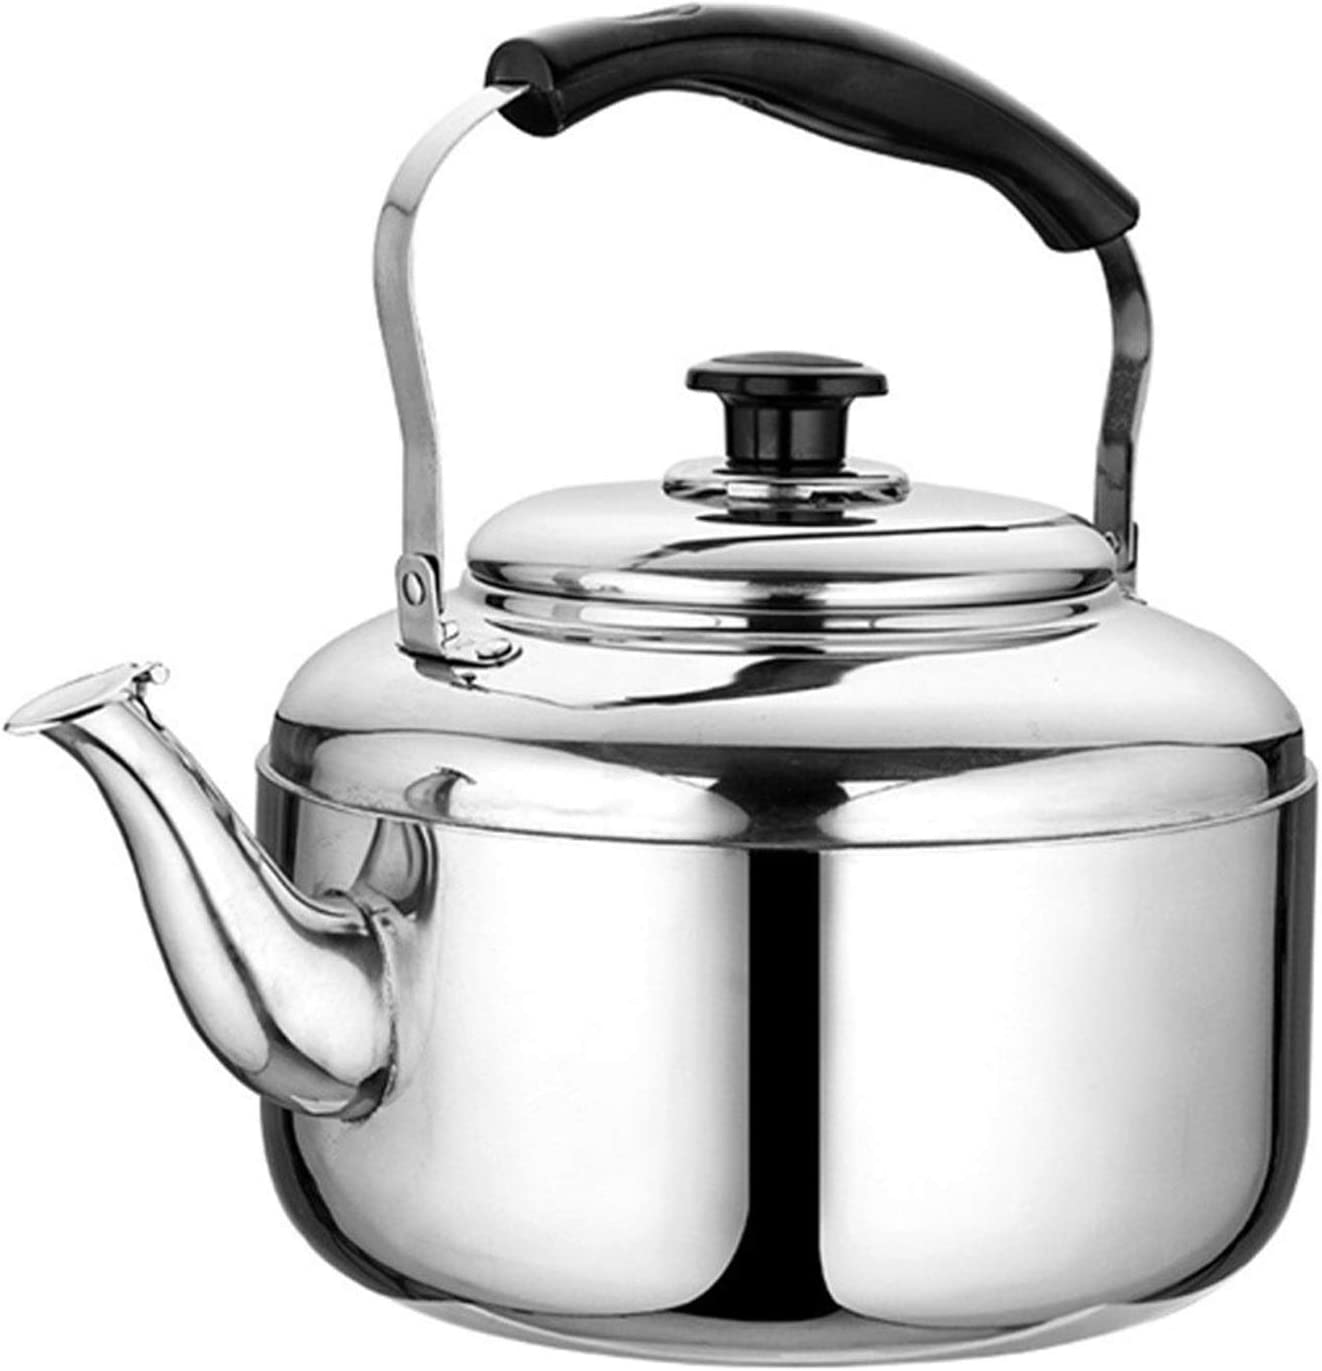 Stainless depot Special price steel tea kettle for Ergonomic top Handle Large- stove